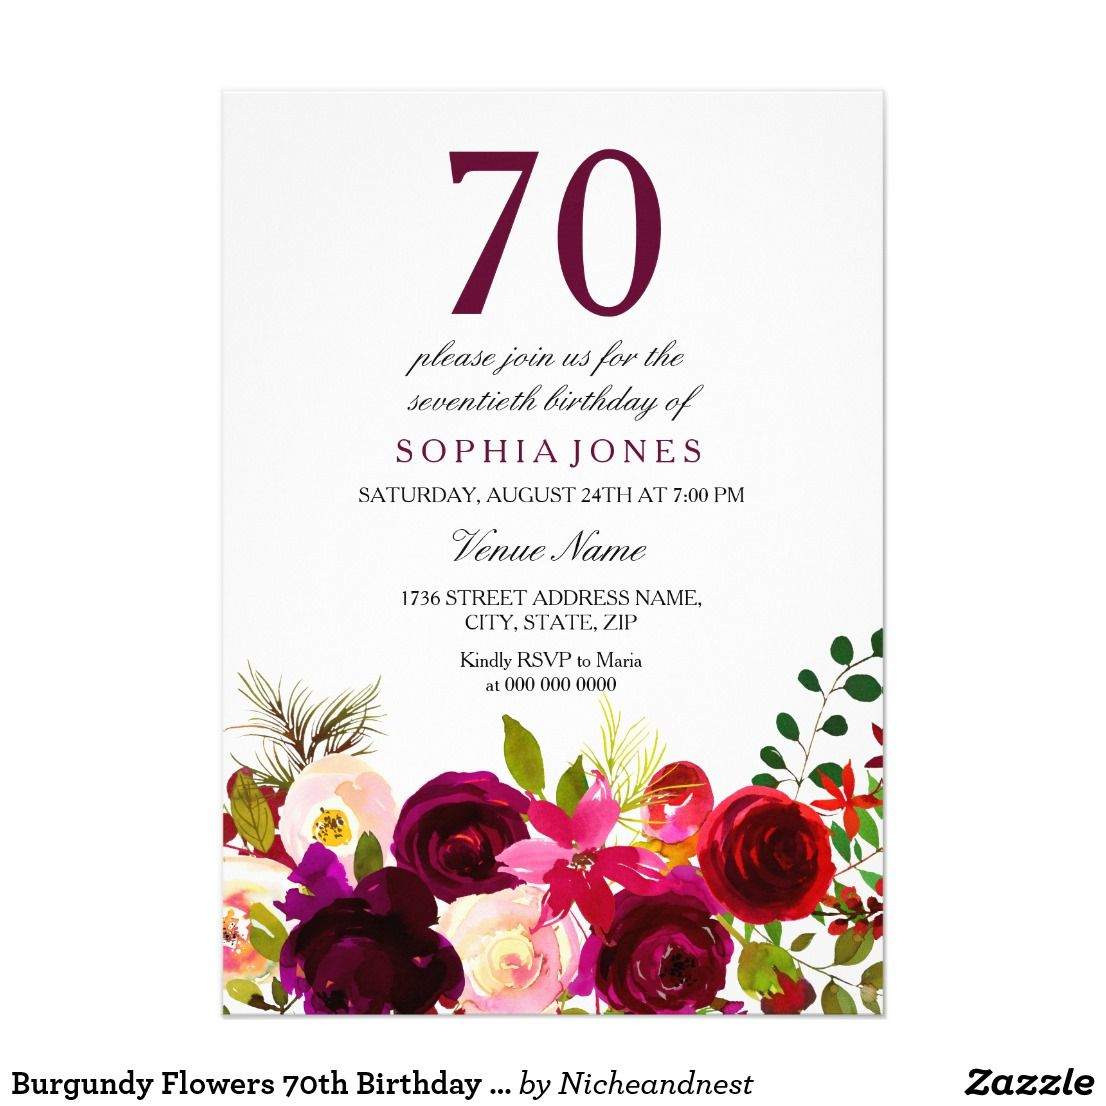 Burgundy flowers 70th birthday party invitation pinterest 70 burgundy flowers 70th birthday party invitation izmirmasajfo